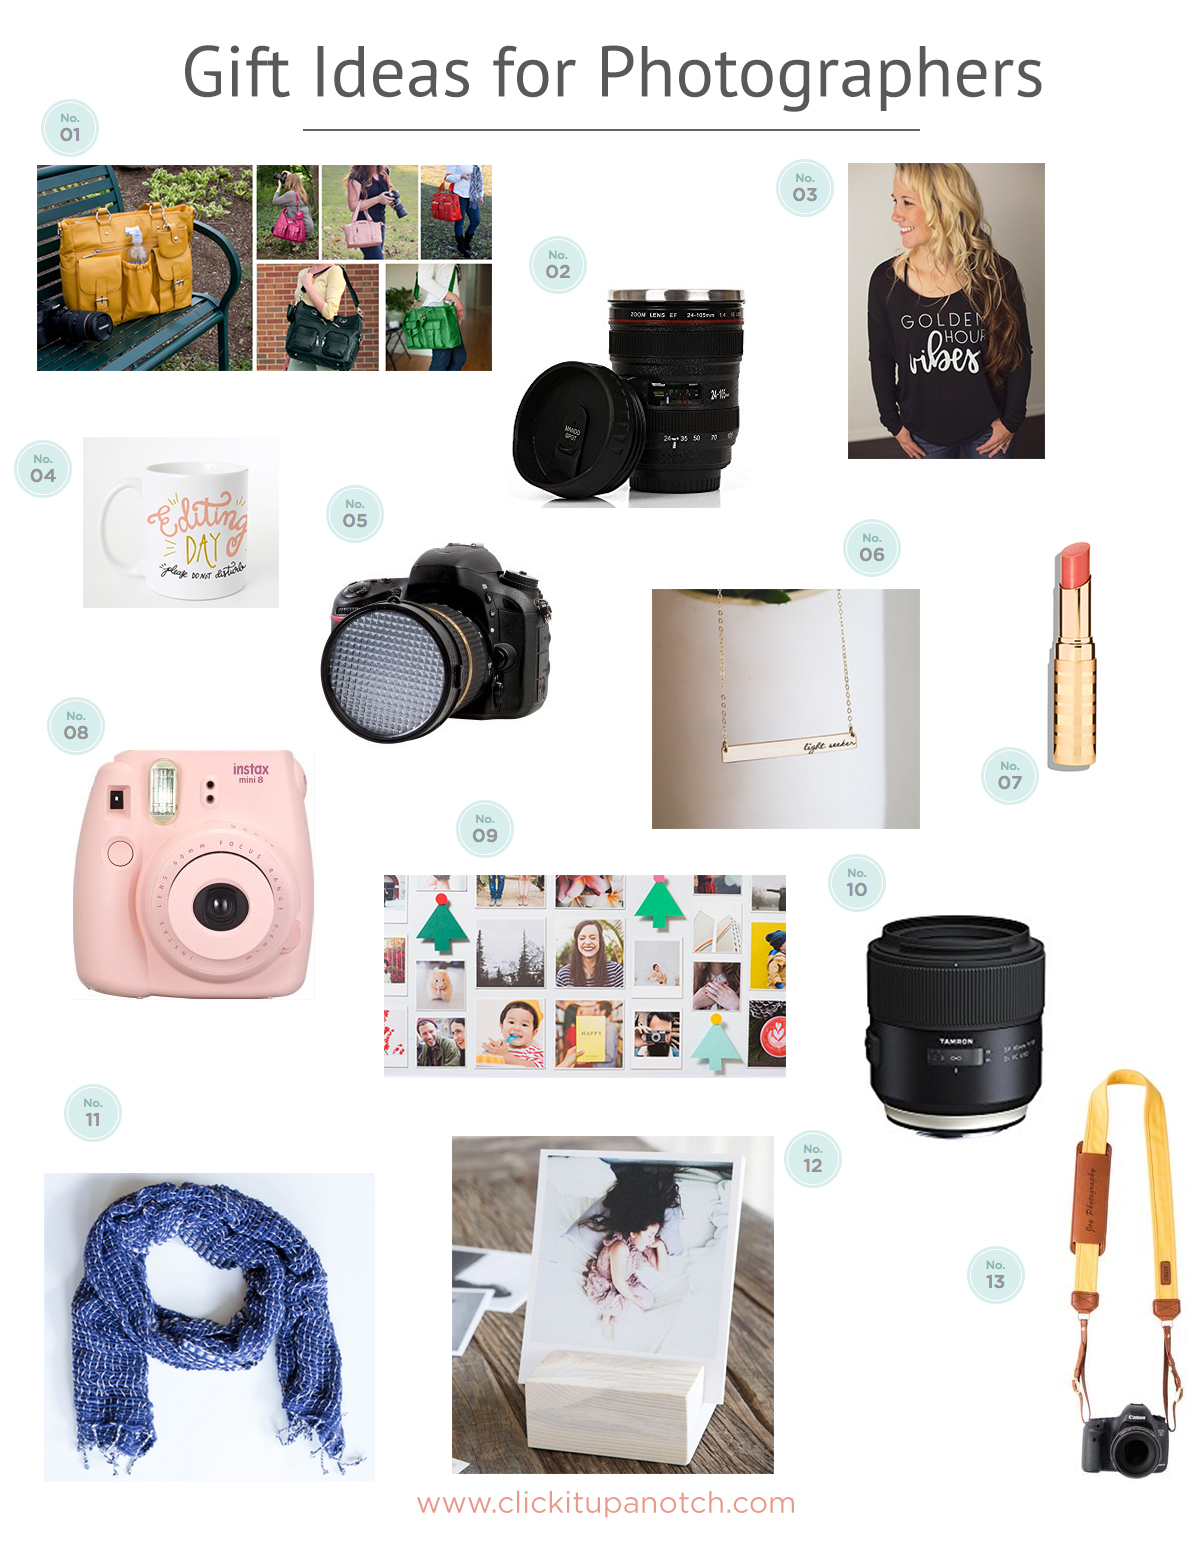 What an amazing list of gift ideas for photographers! I need to send Santa this list as there are several things I really want! Via clickitupanotch.com